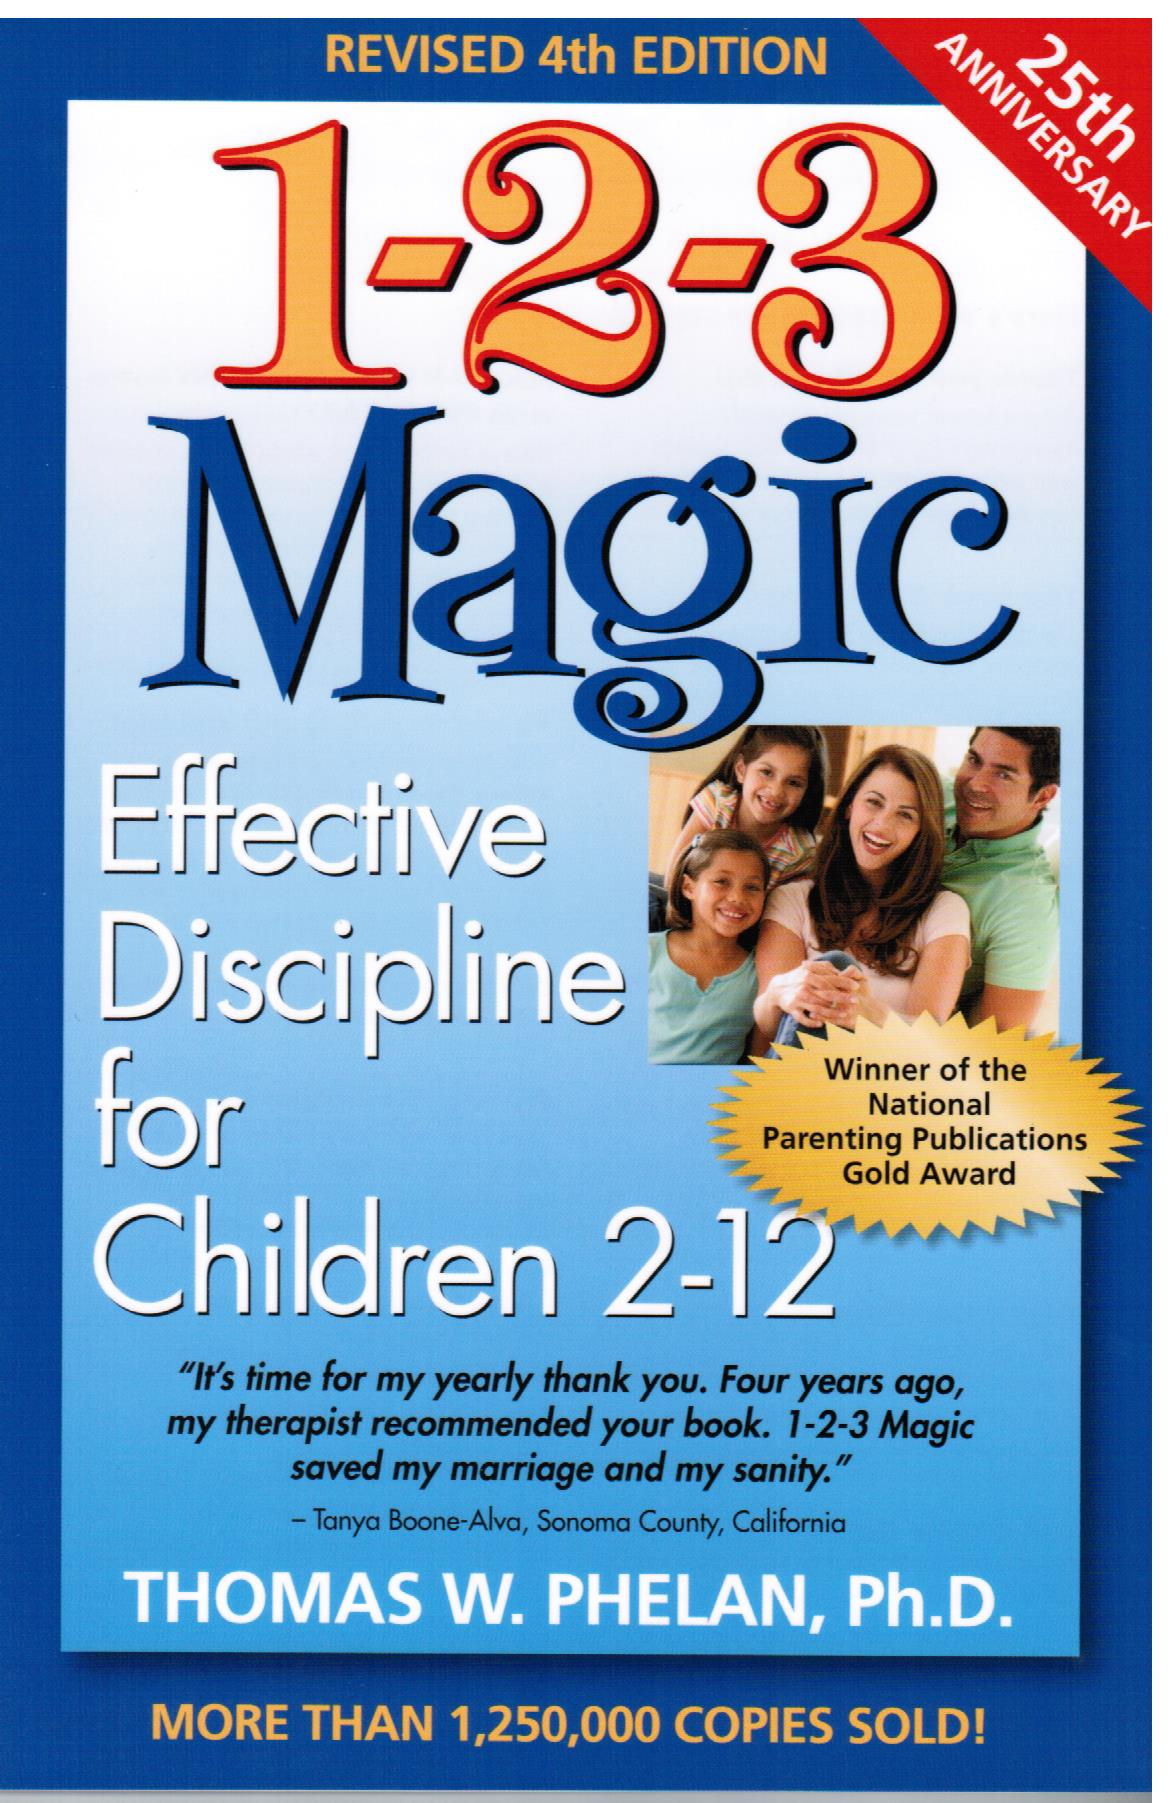 An overview of the 1-2-3 Magic approach to disciplining your kids.